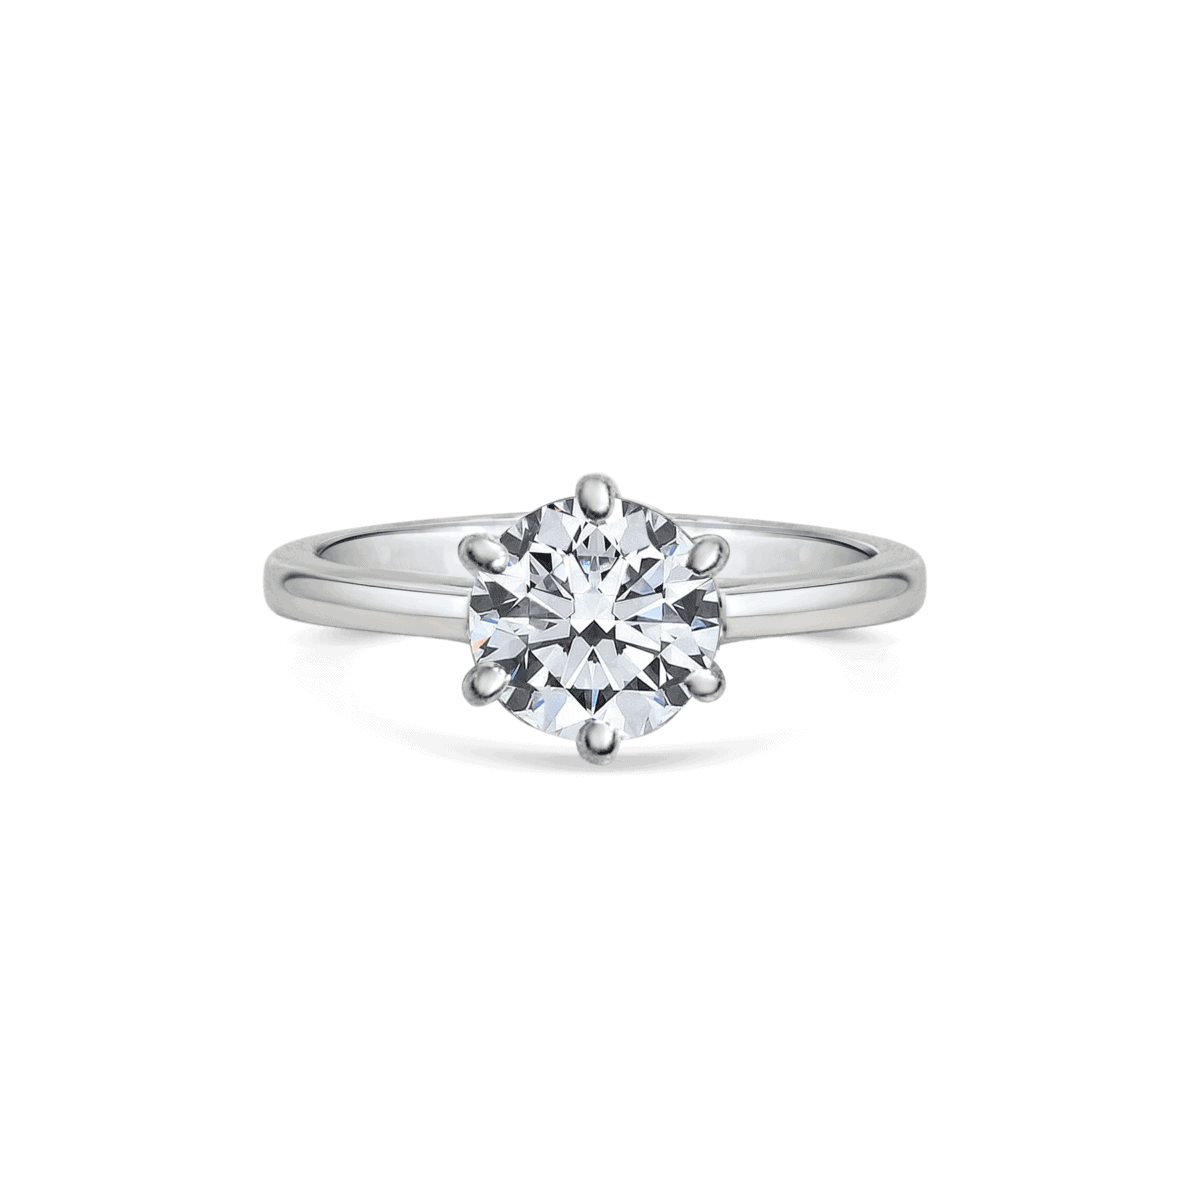 Elena Round Cut Diamond Six Claw Twist Solitaire Engagement Ring